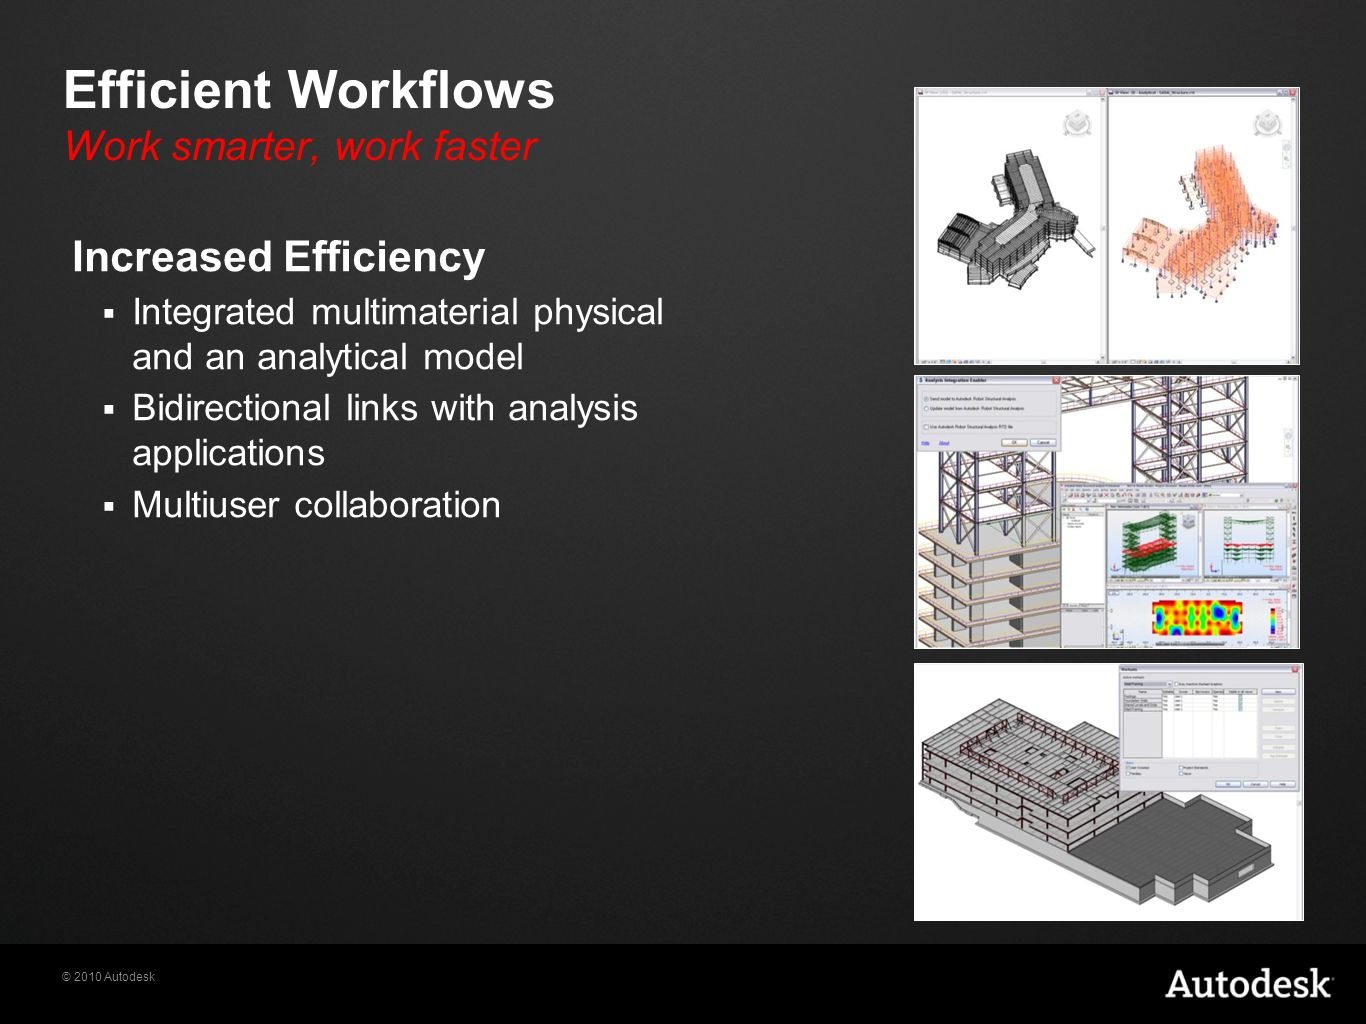 © 2010 Autodesk Efficient Workflows Work smarter, work faster Increased Efficiency  Integrated multimaterial physical and an analytical model  Bidirectional links with analysis applications  Multiuser collaboration